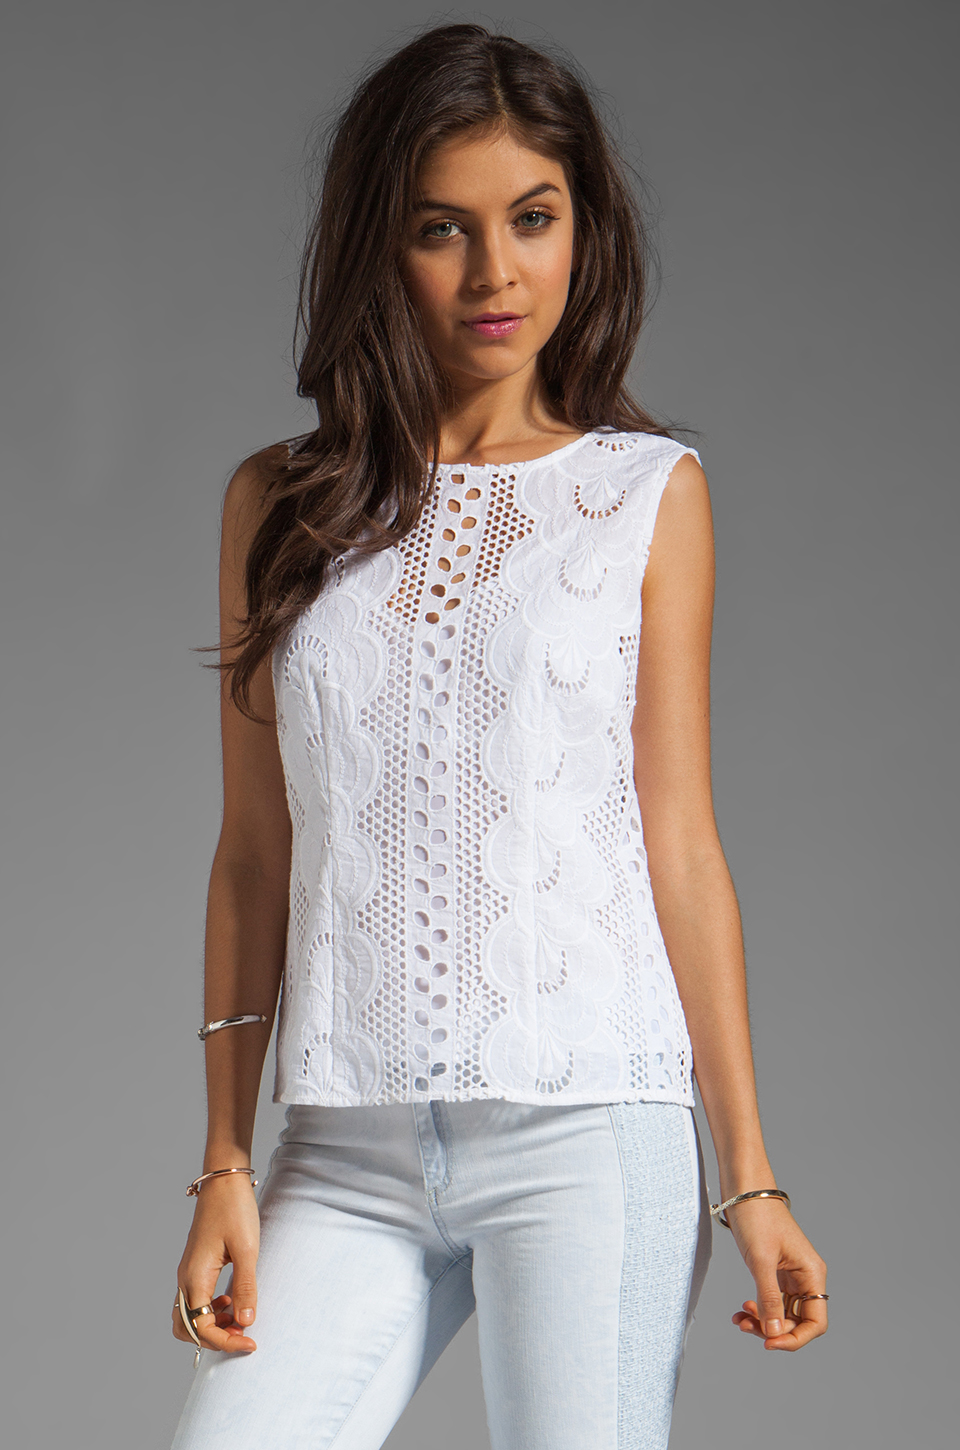 Nanette Lepore Tranquil Top in White